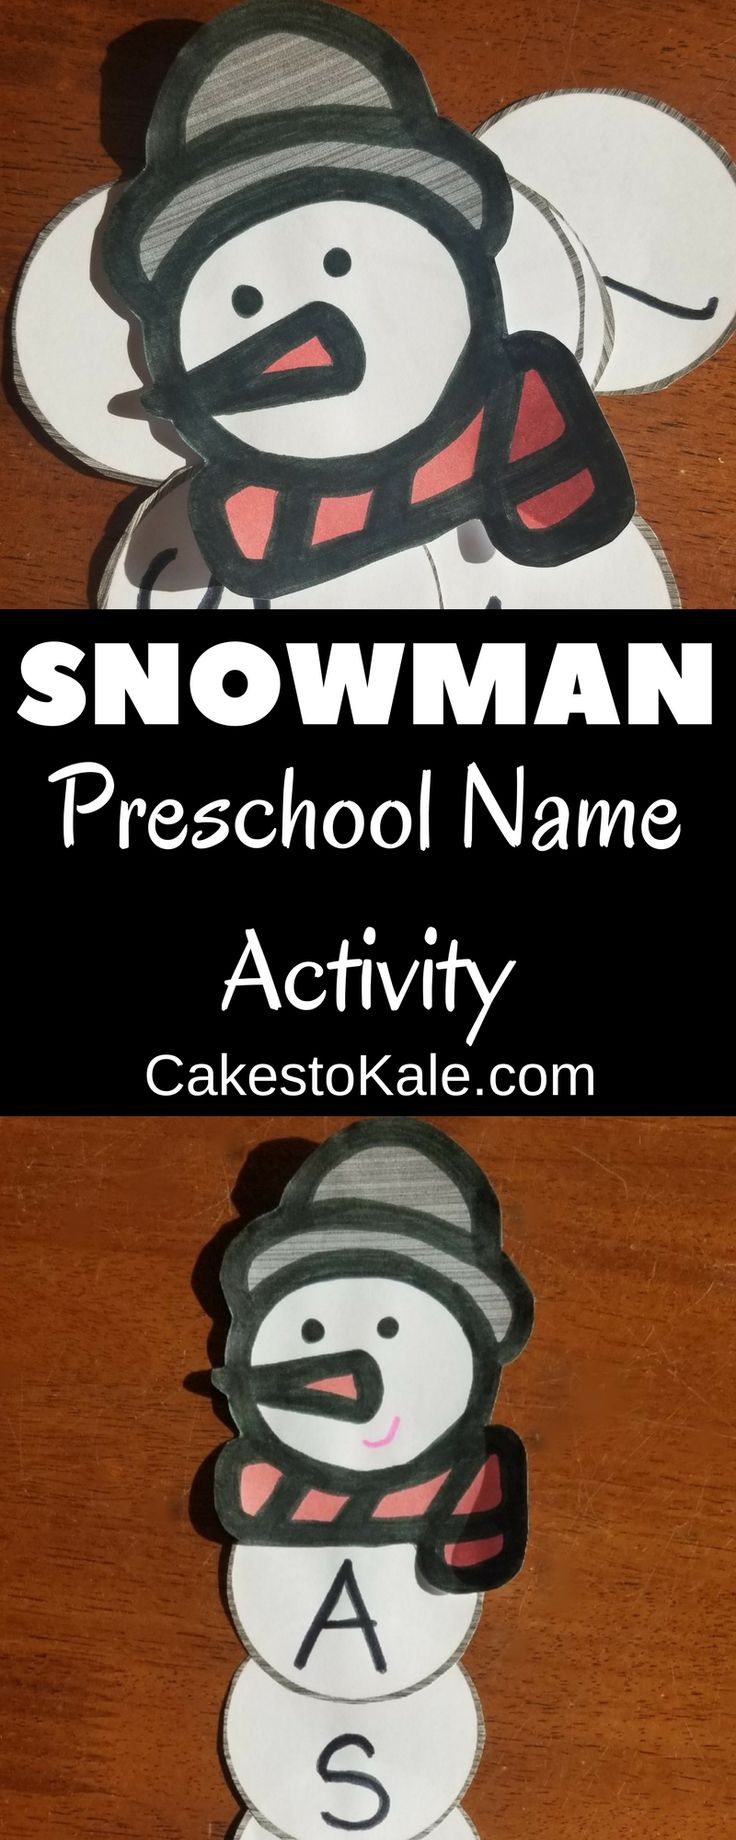 Snowman Preschool Name Activity #preschool #homeschool #kids #craft